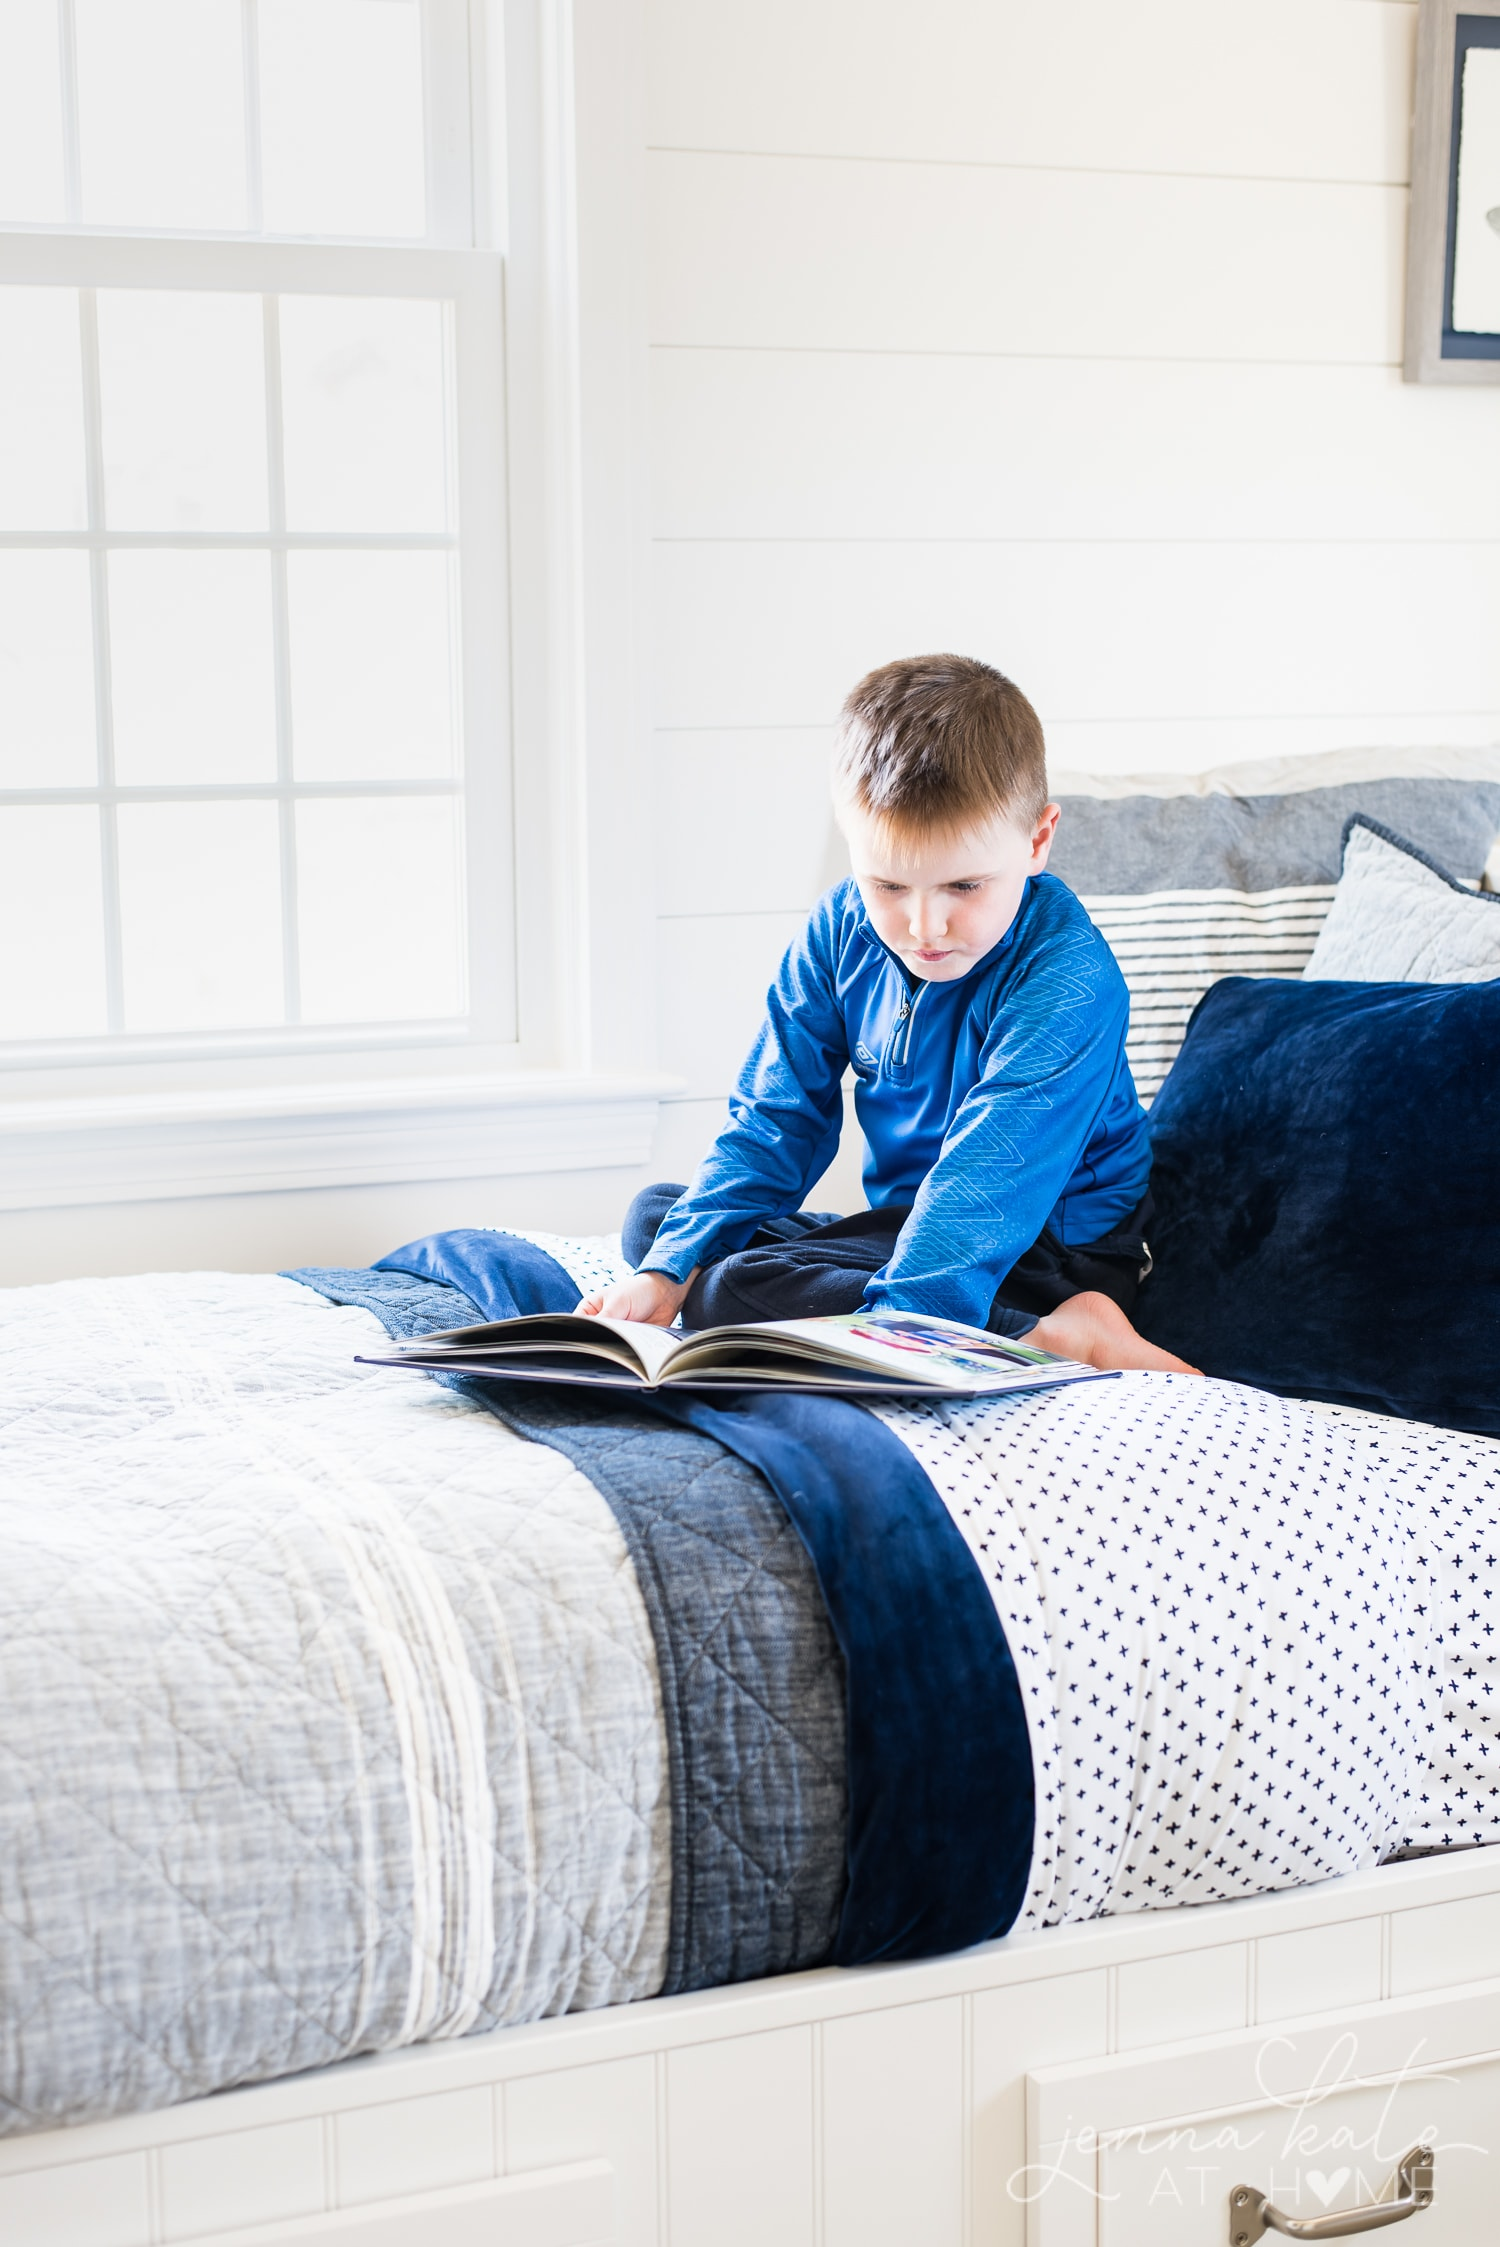 Young boy reading on the bed with layered bedding - small print bedsheets, solid navy duvet cover and gray quilt.